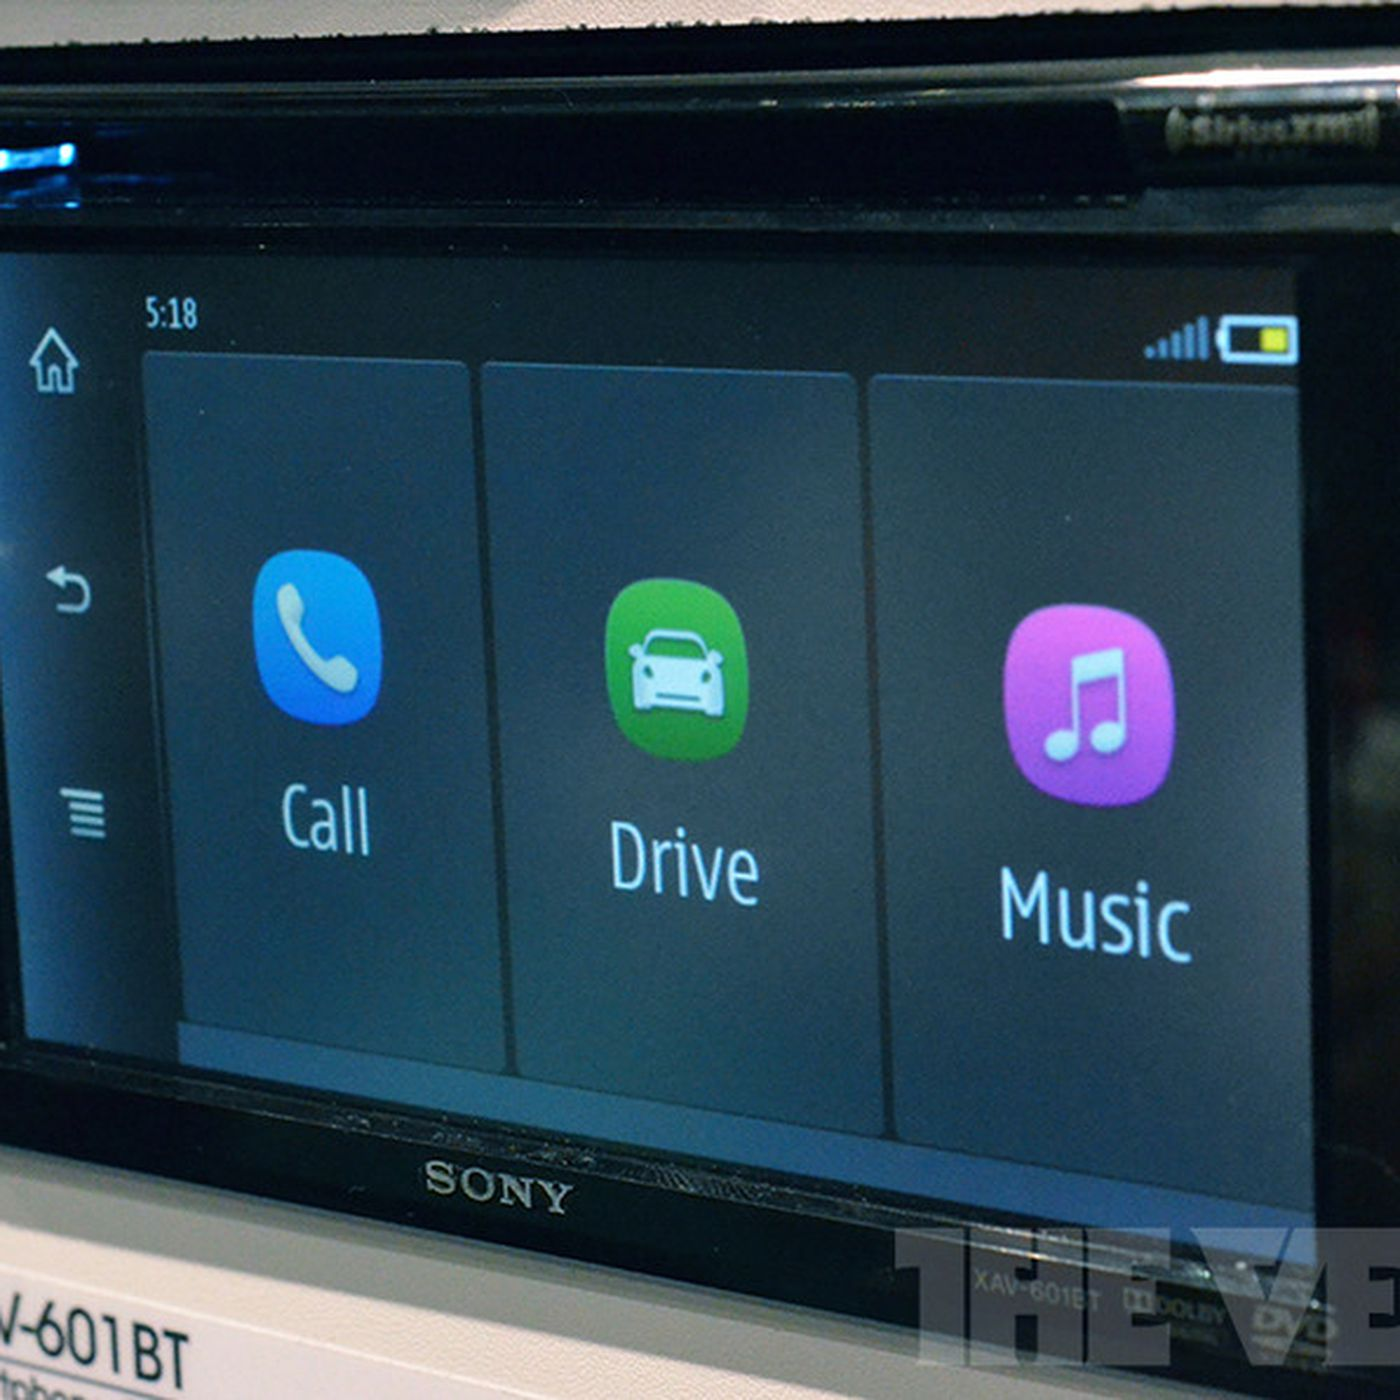 Sony s new MirrorLink enabled car head units put your smartphone in the dashboard hands on The Verge